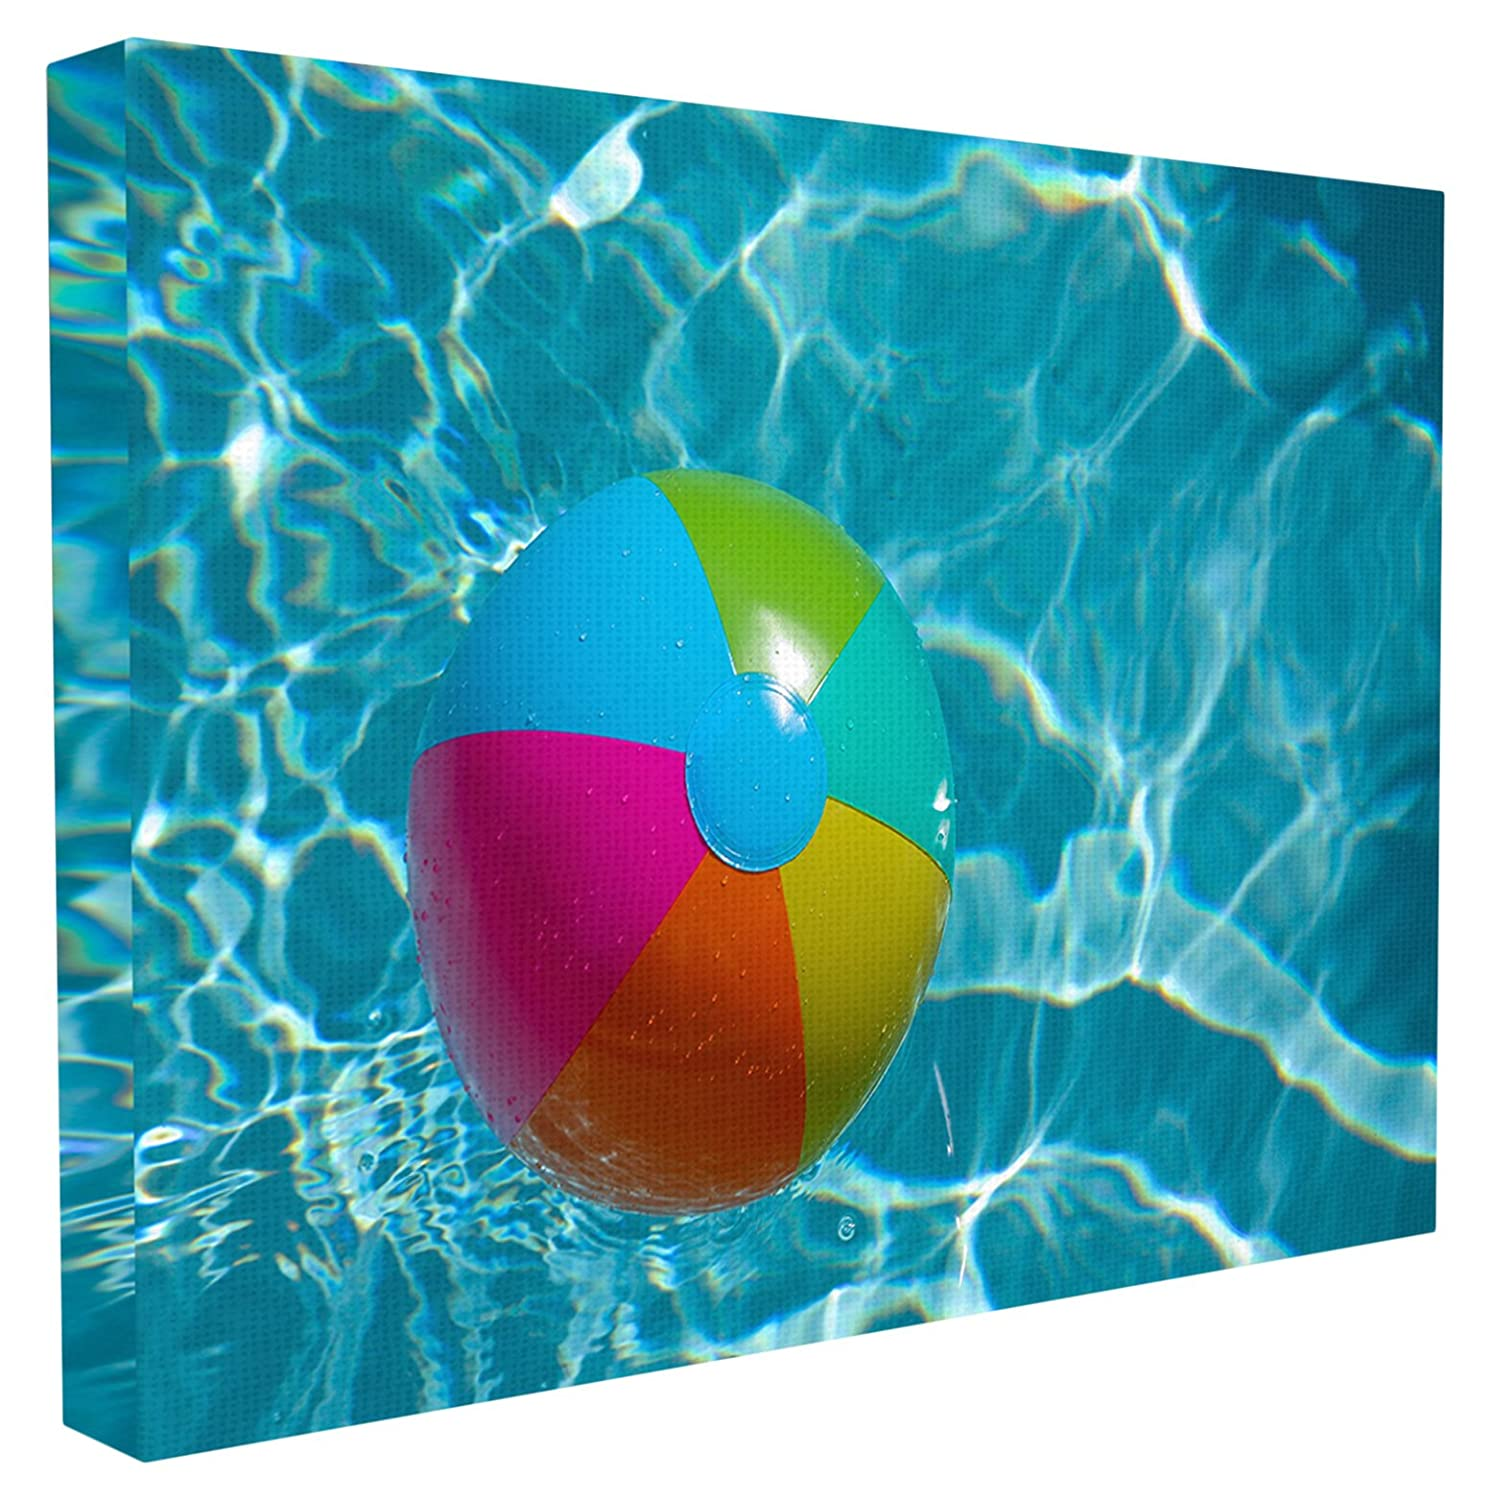 Stupell Home D/écor Beach Ball Pool Time Oversized Stretched Canvas Wall Art 24 x 1.5 x 30 Proudly Made in USA